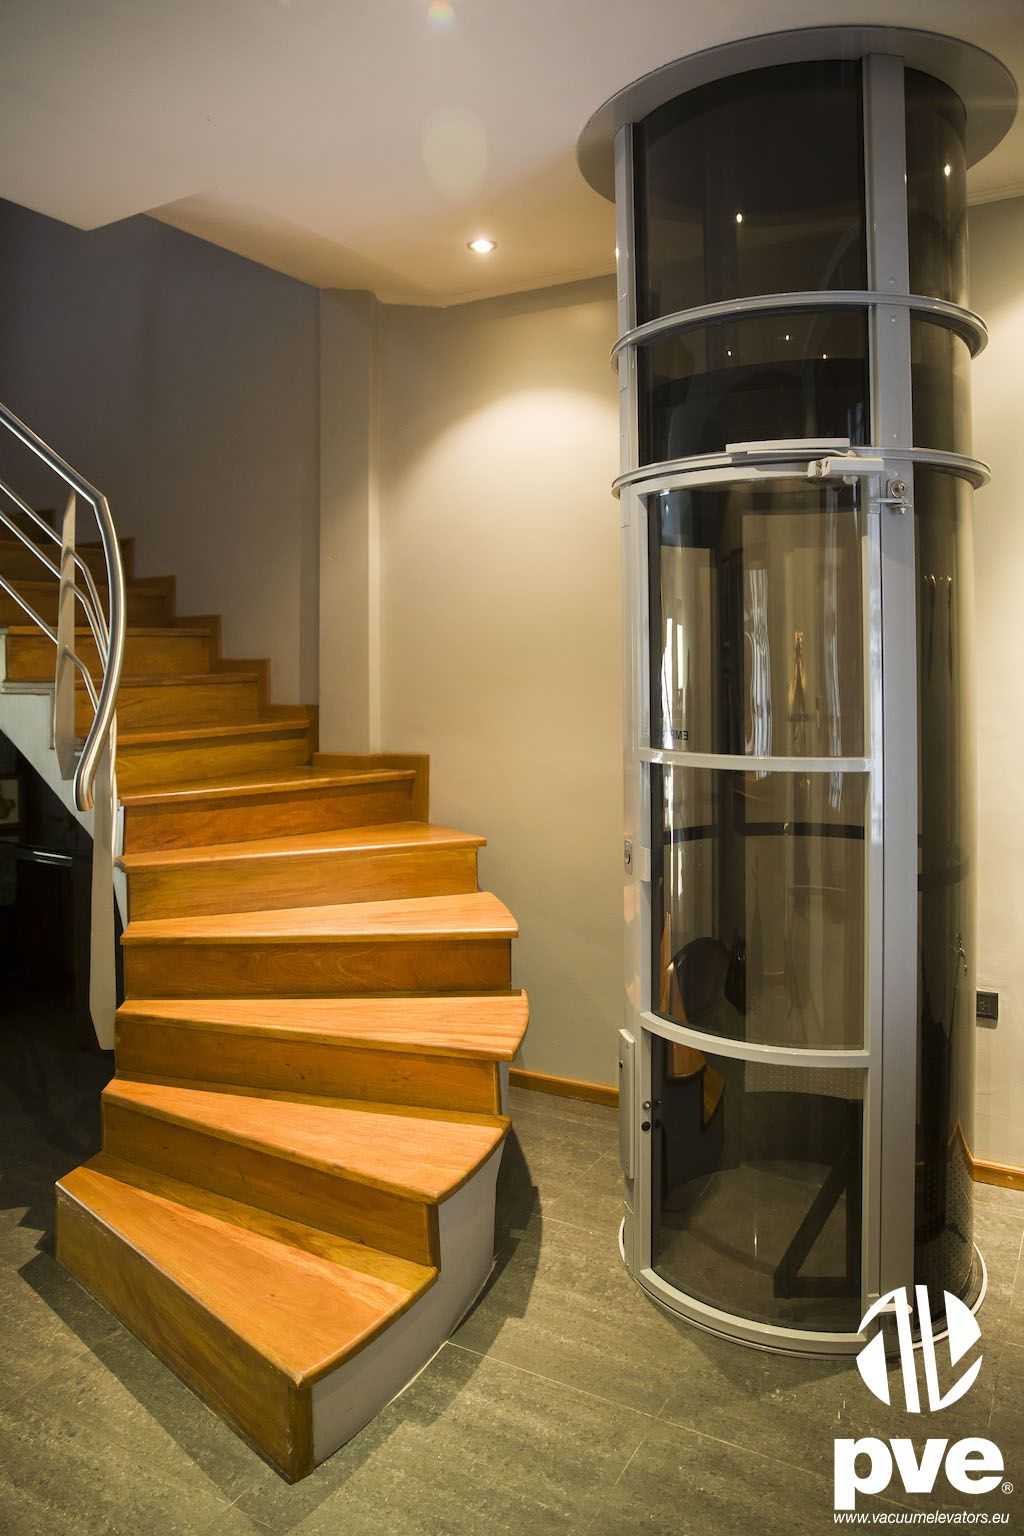 Home elevators prices - A Vacuum Lift Can Fit In With Any Room Or House Design Vacuum